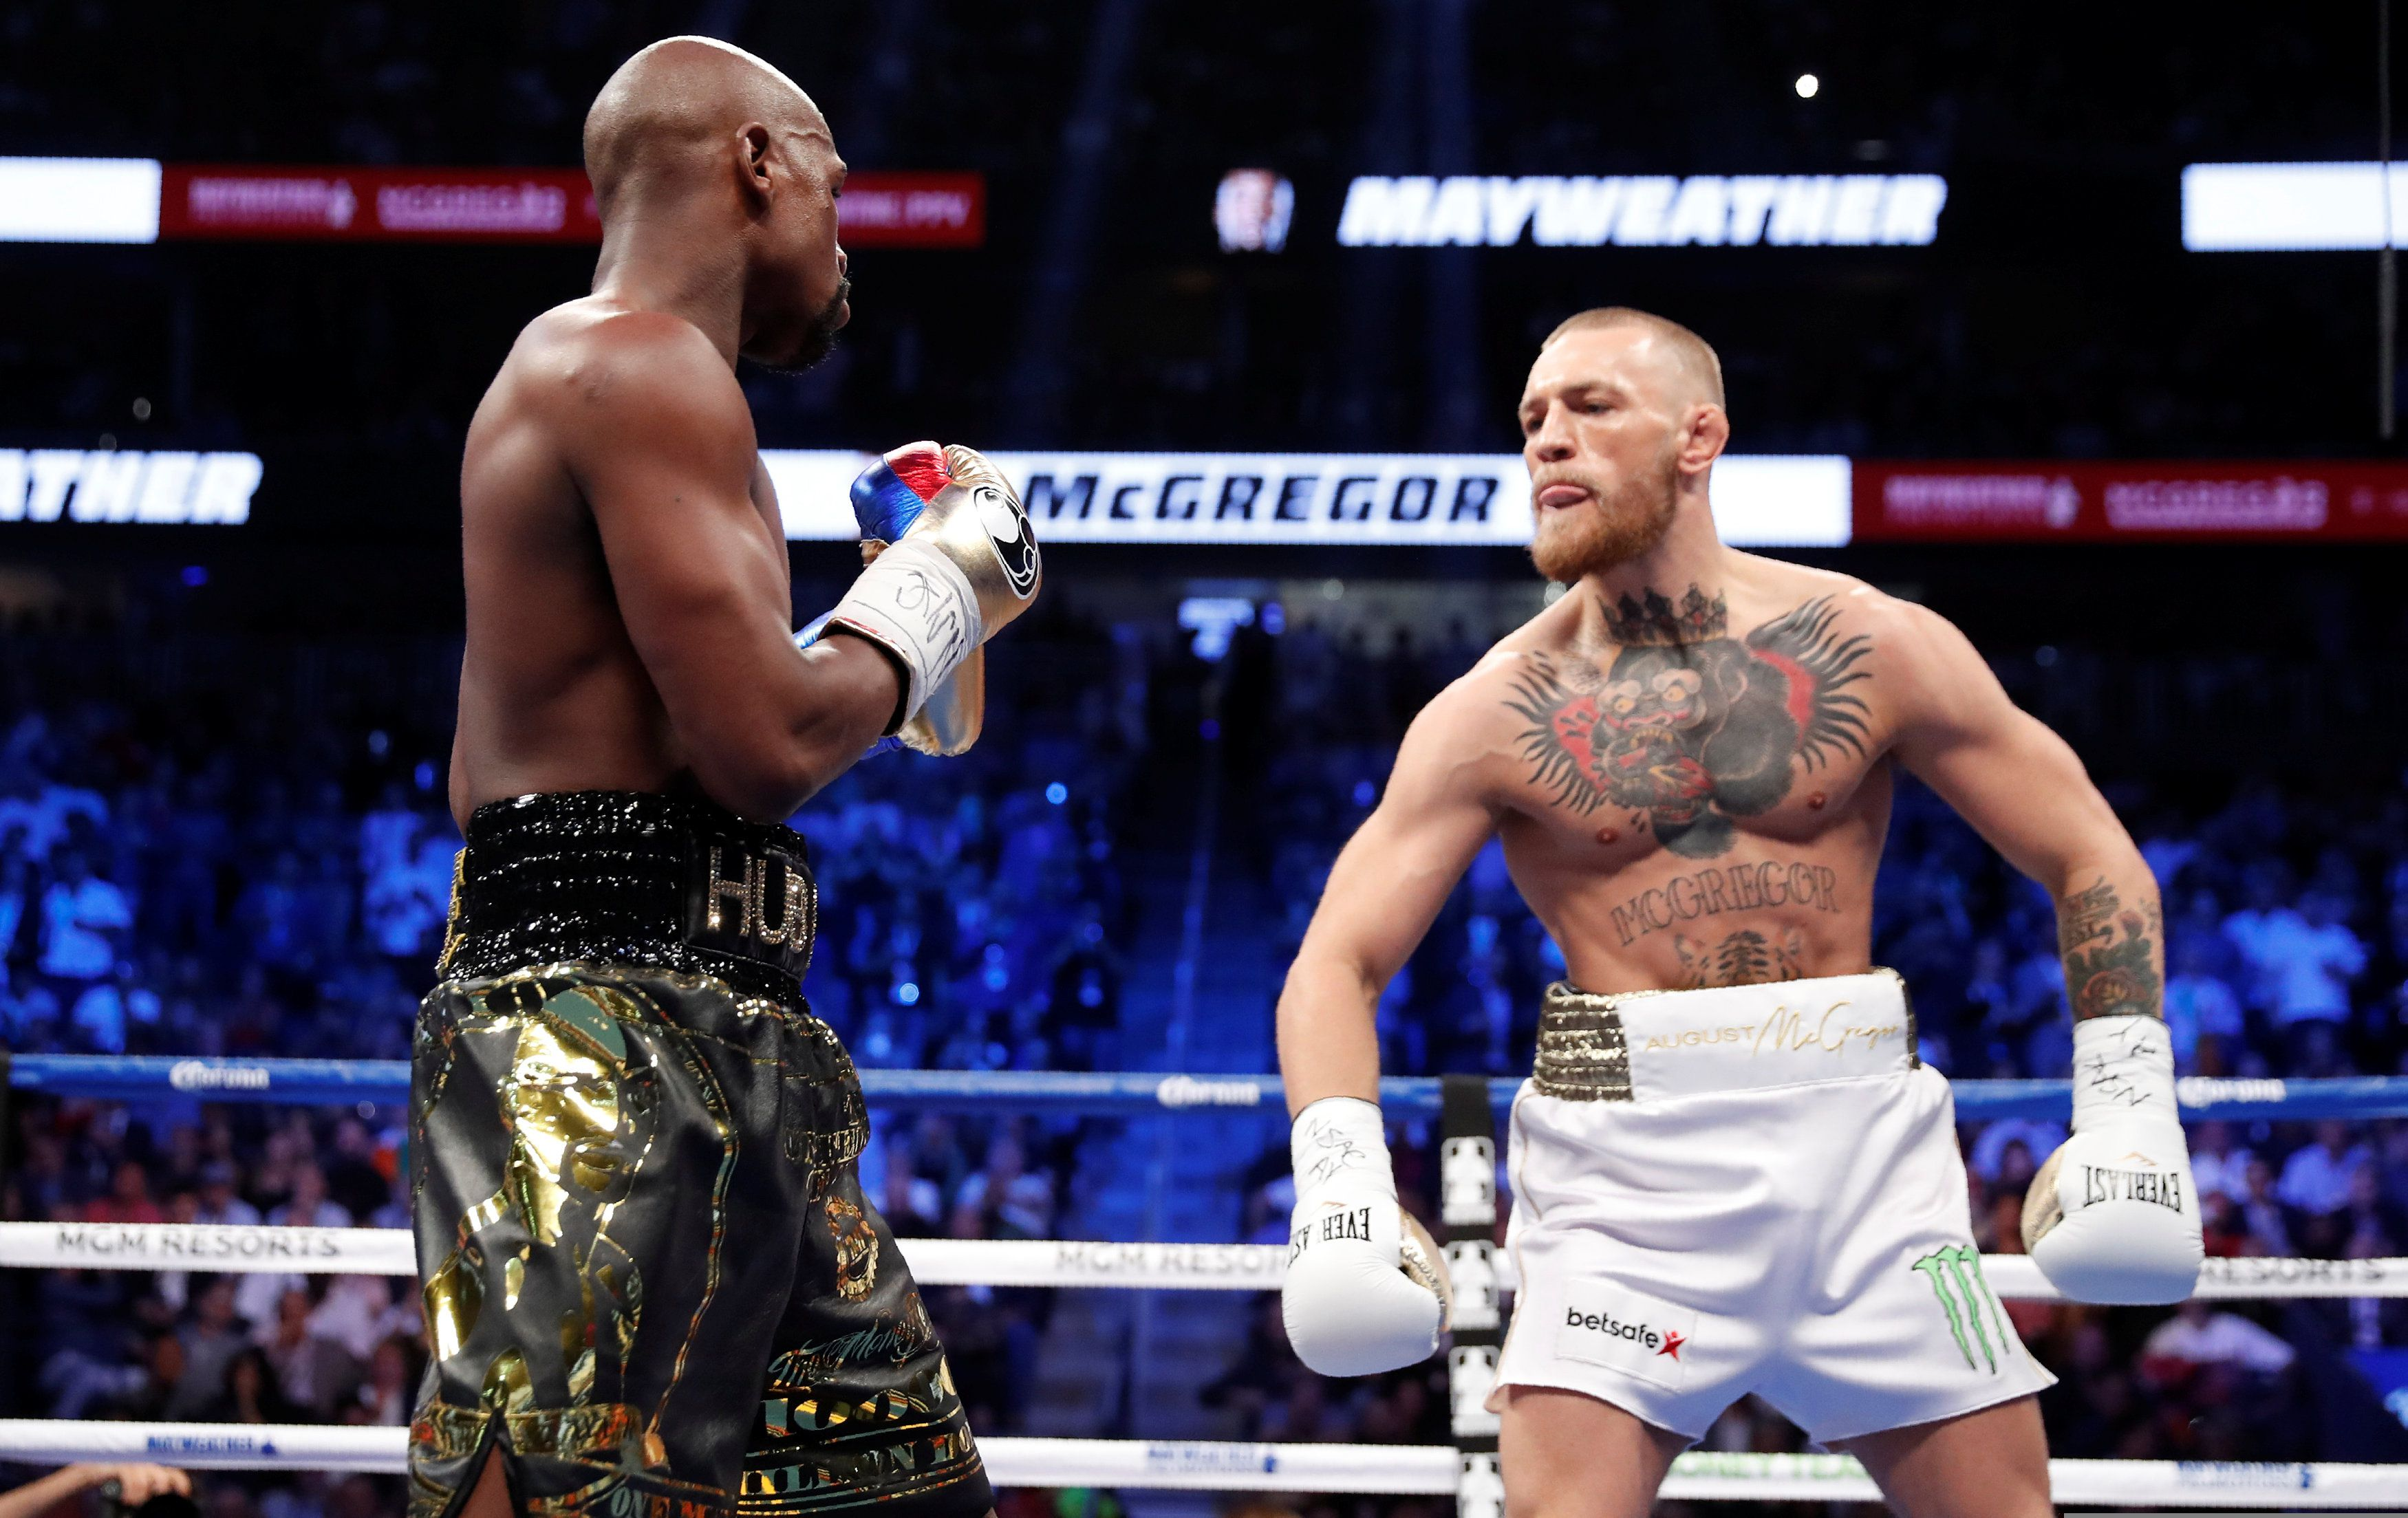 McGregor peleó en 2017 ante Mayweather (REUTERS/Steve Marcus/File Photo)